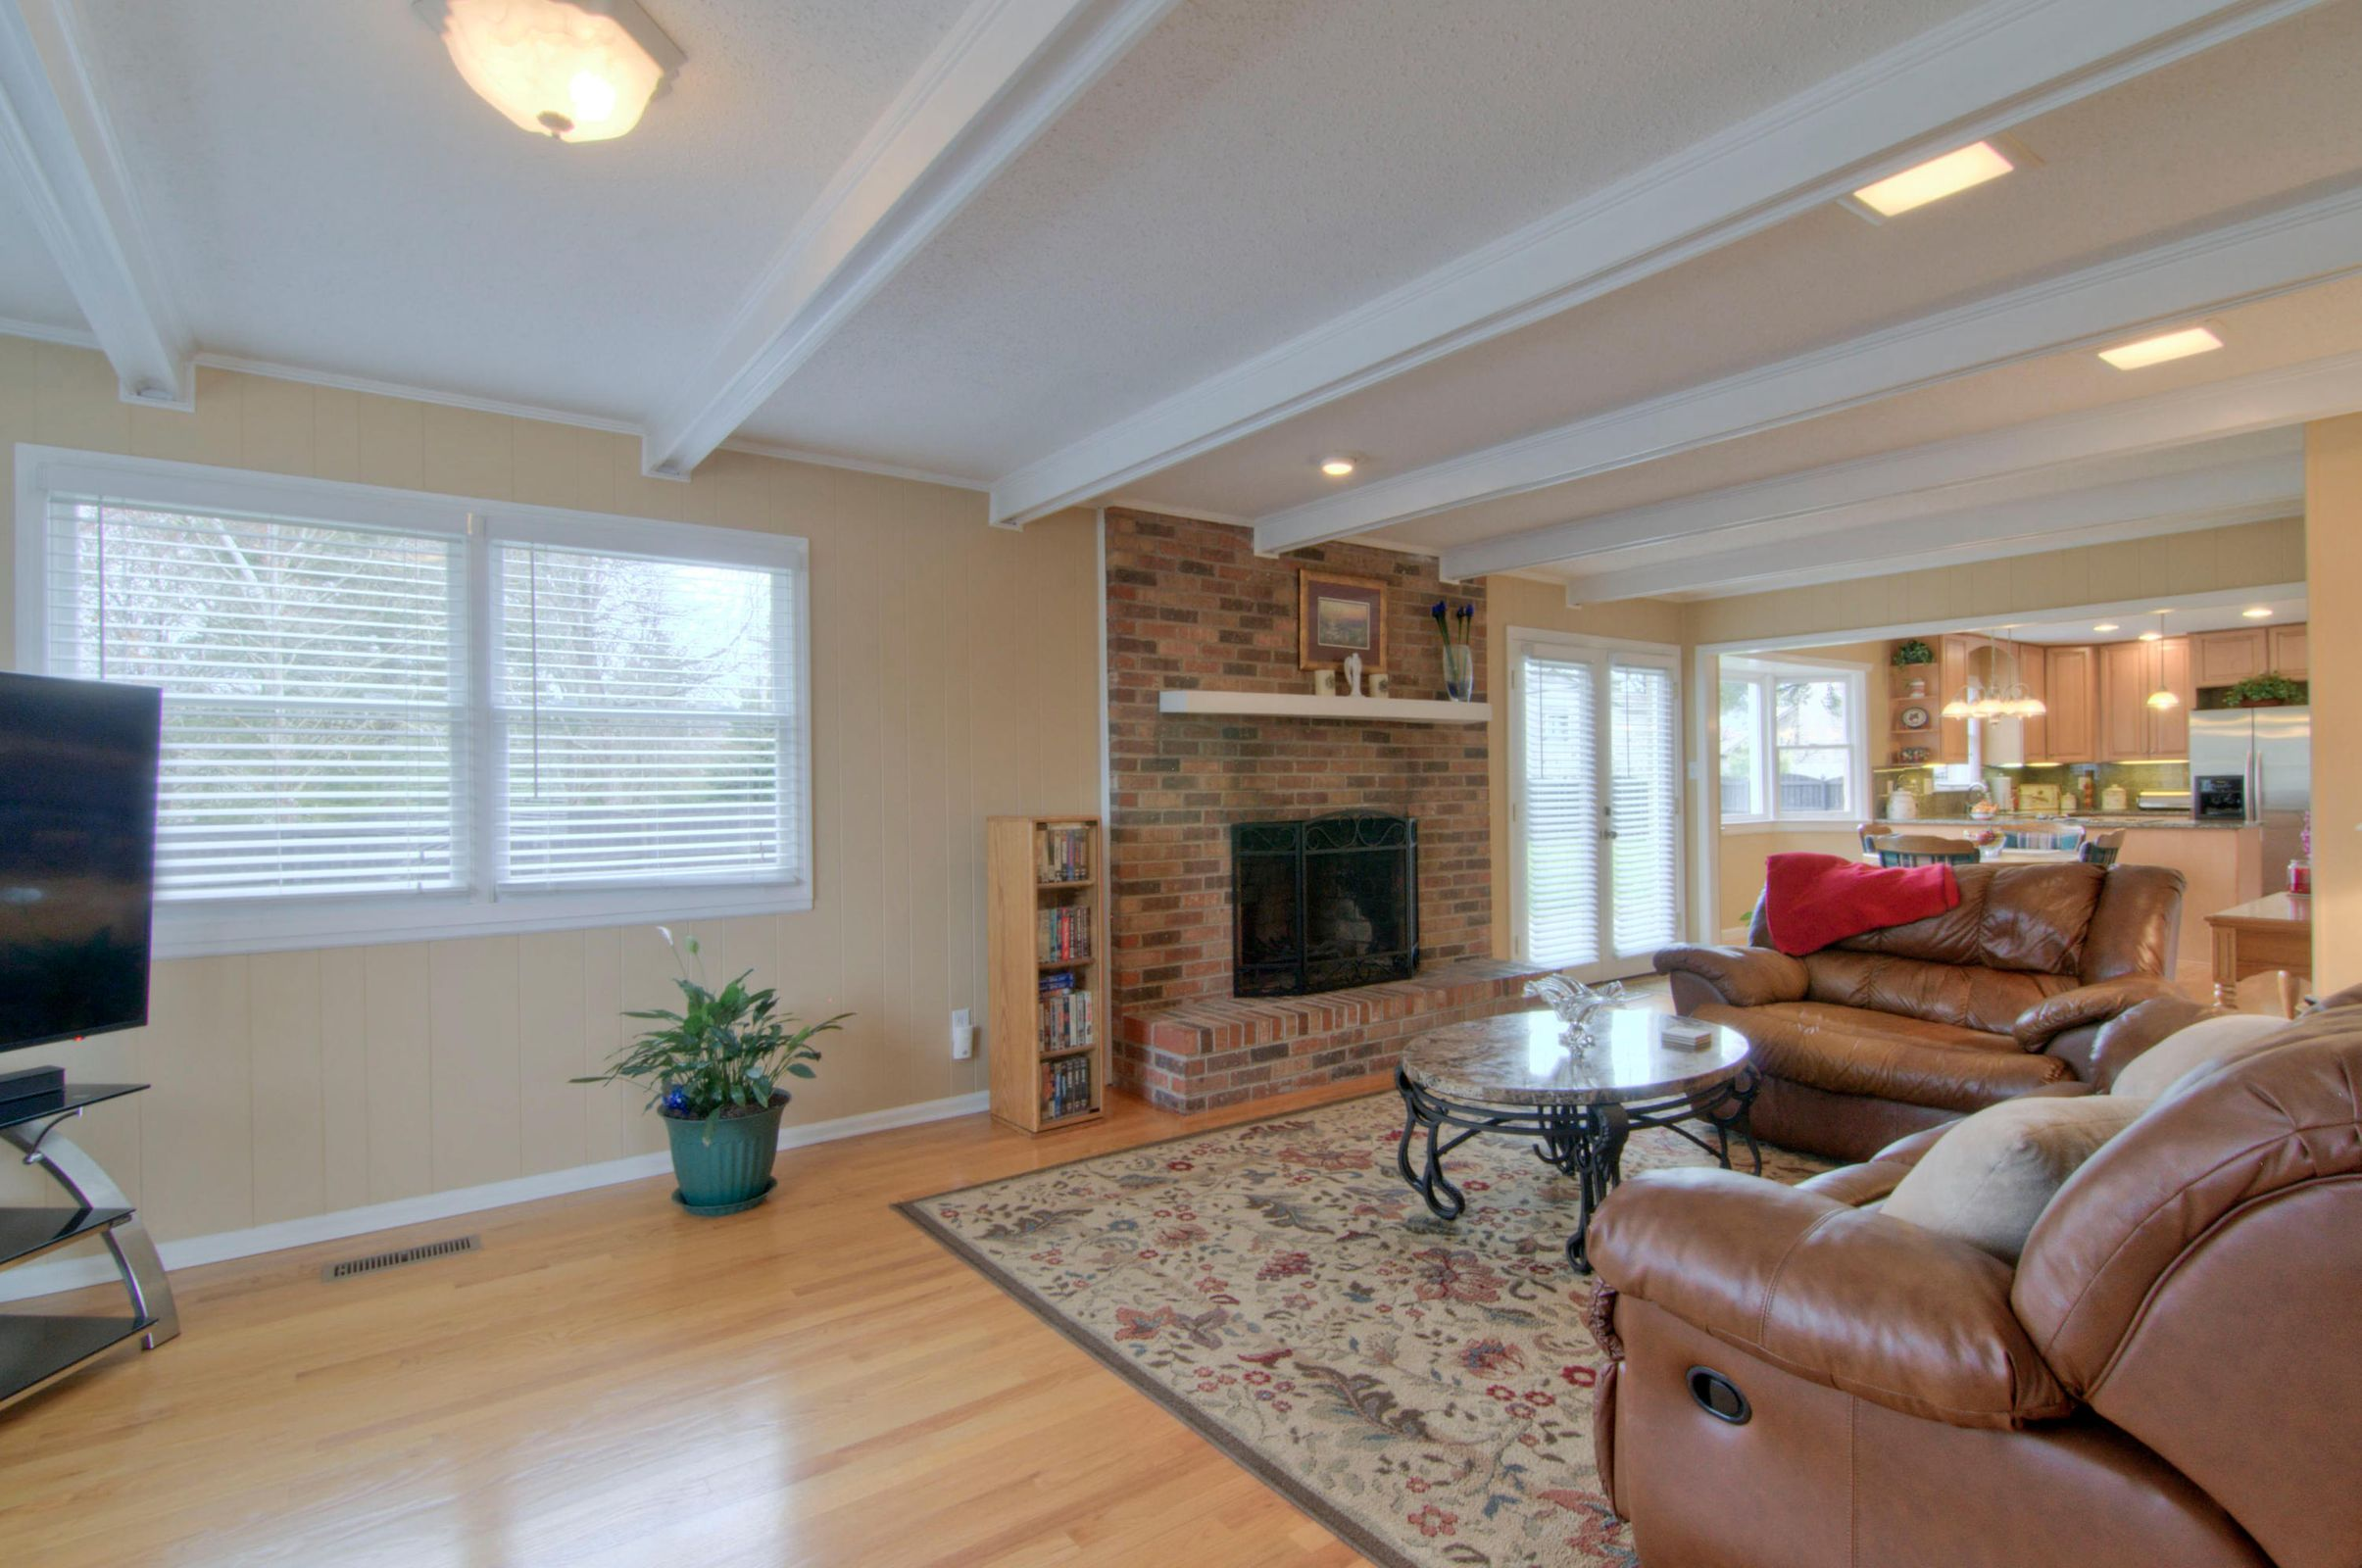 LARGE FAMILY ROOM W FIREPLACE